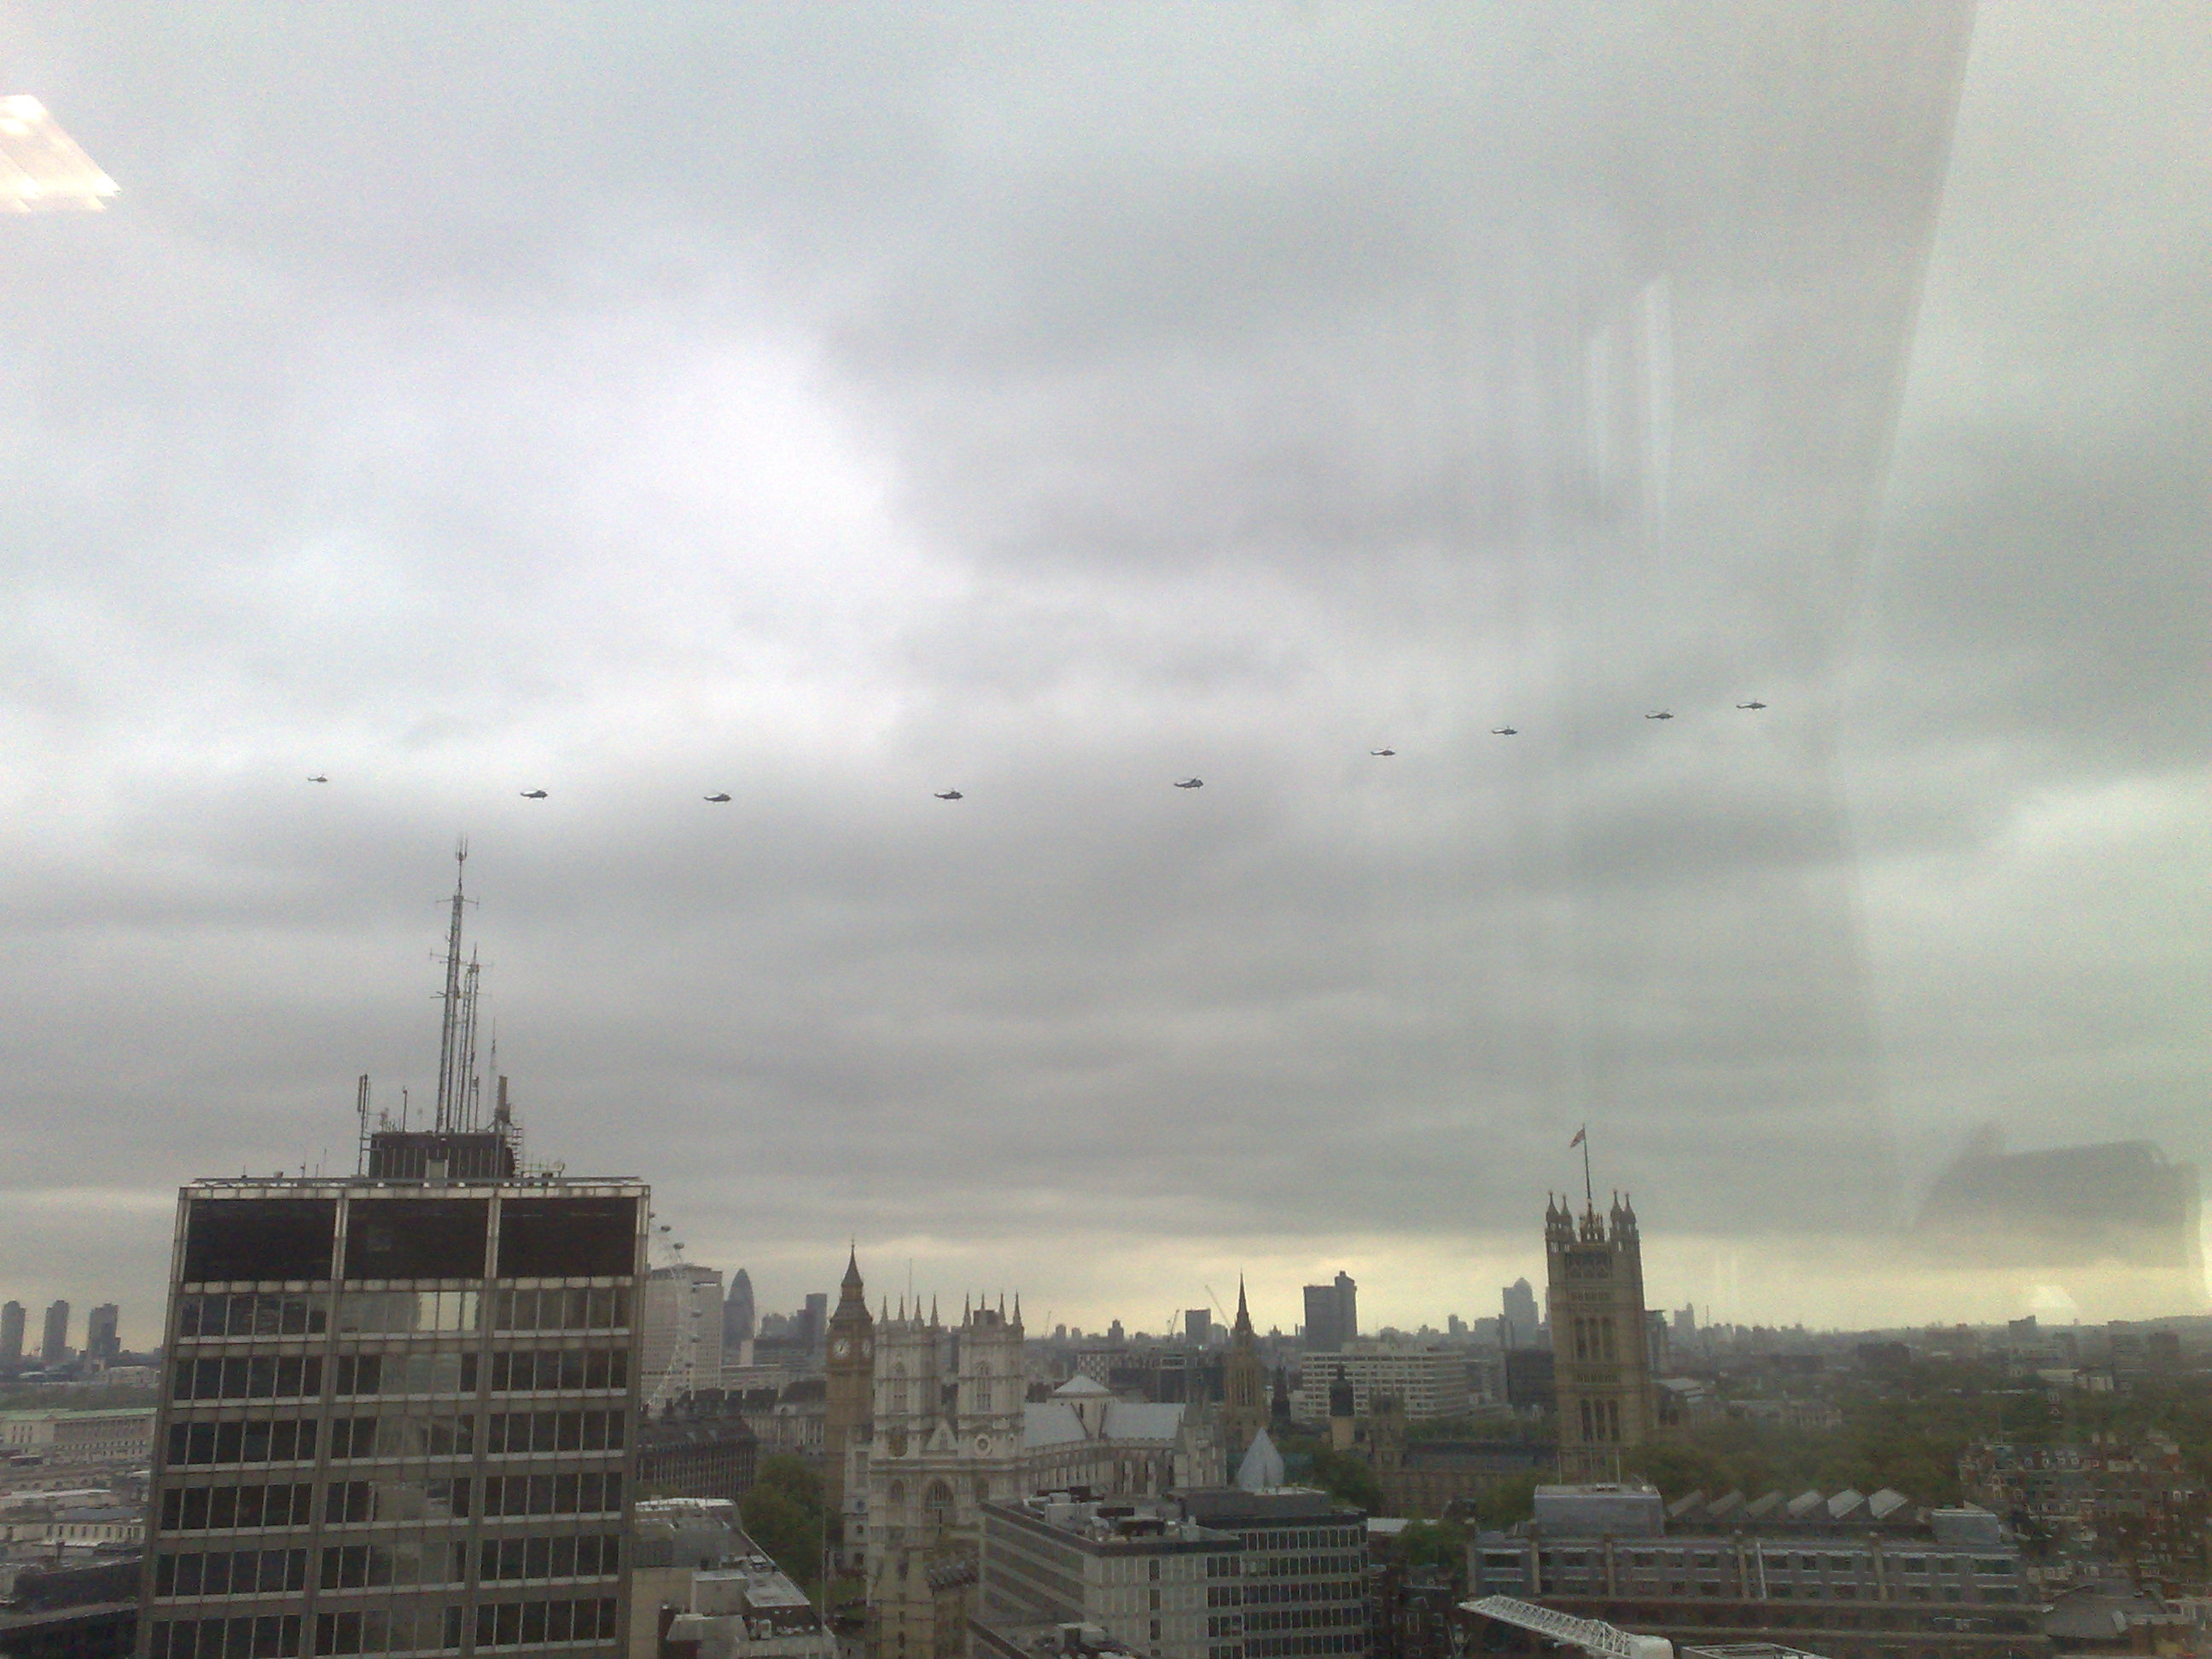 Westminster Skyline - with Helicopters